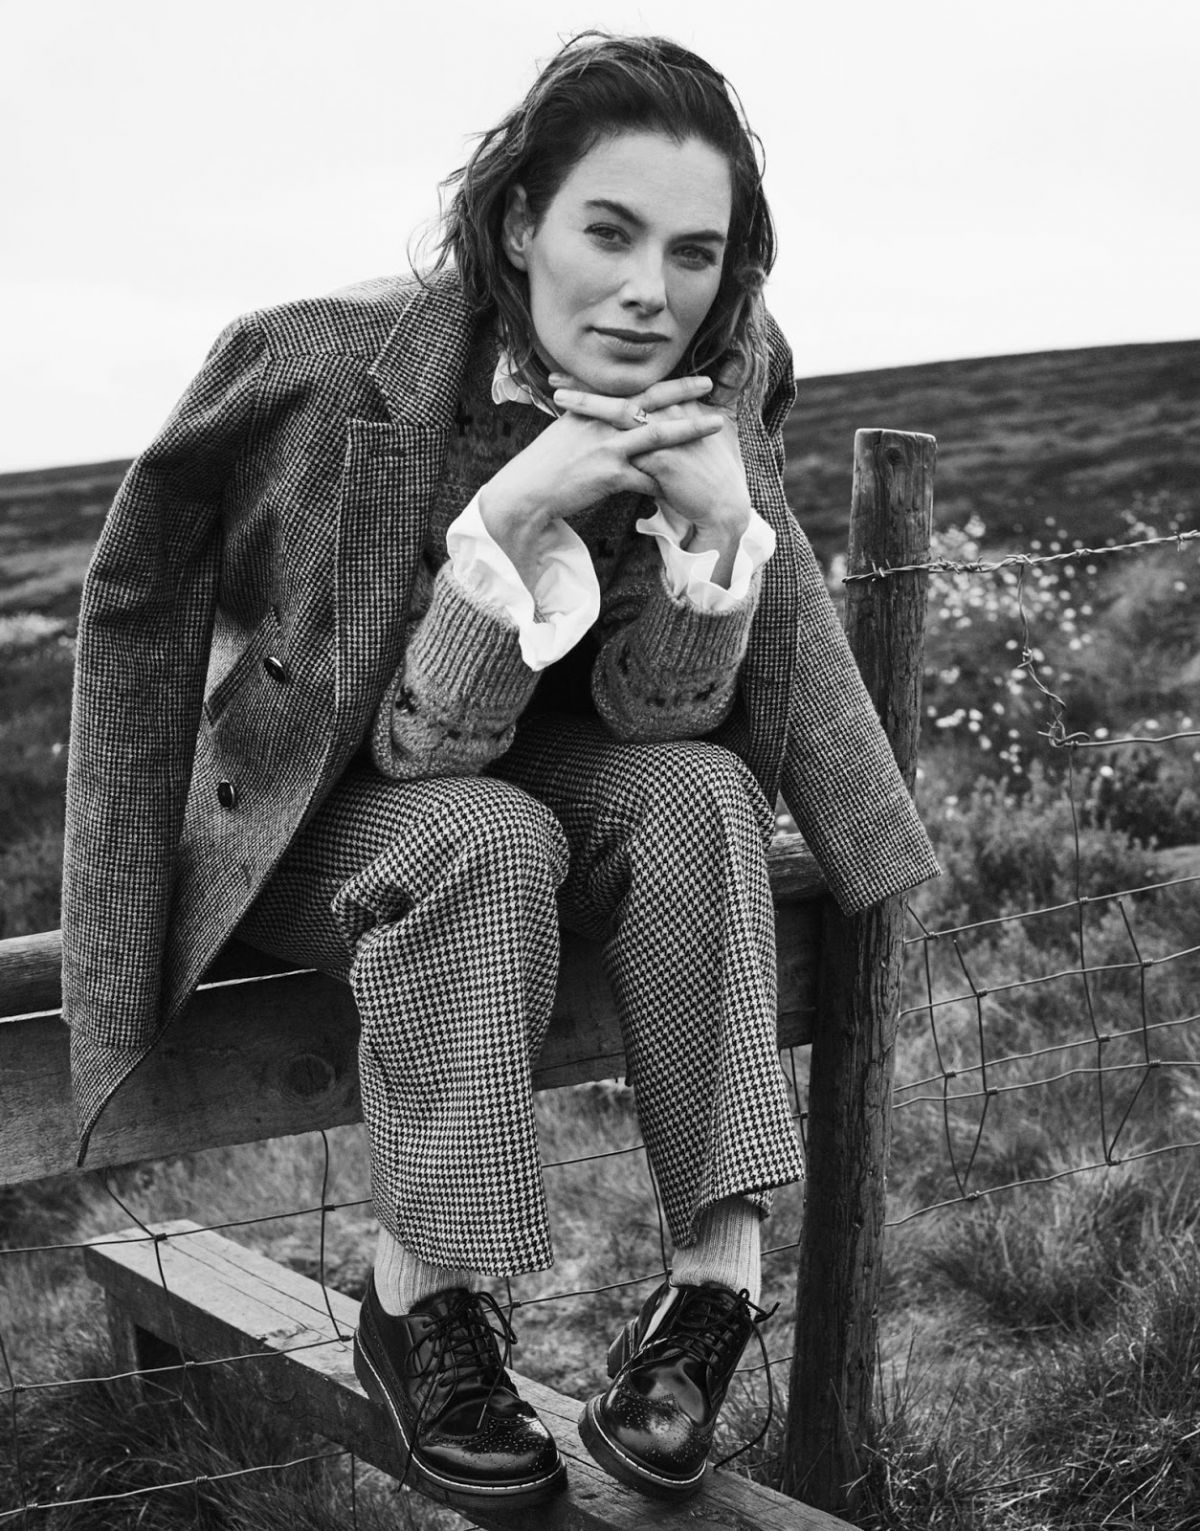 LENA HEADEY for The Edit Magazine, July 2017